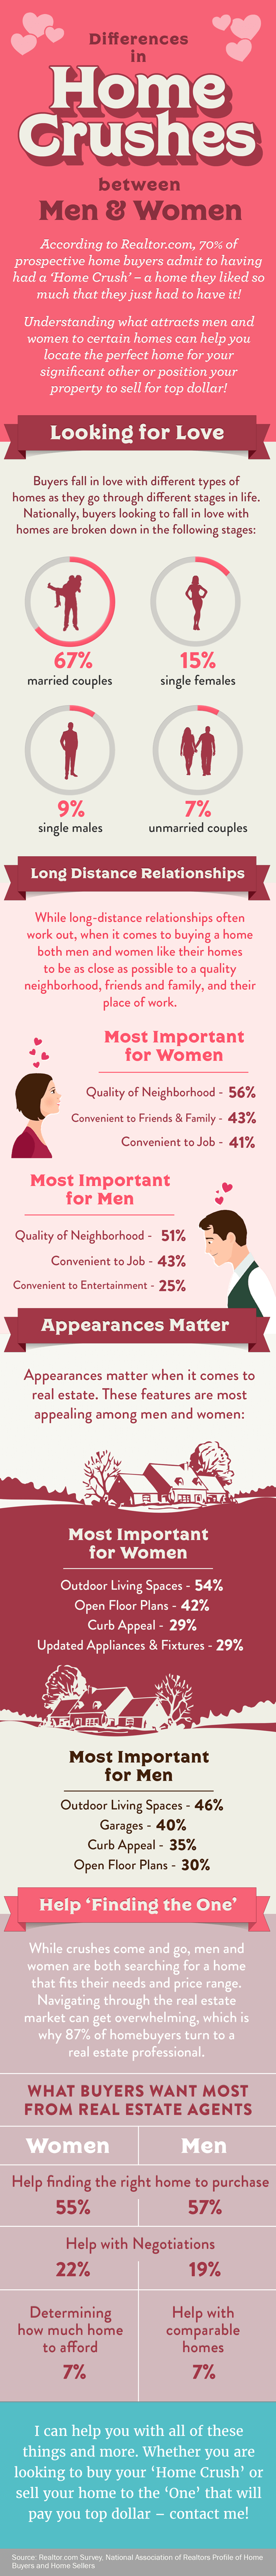 Differences in Home Crushes between Men and Women